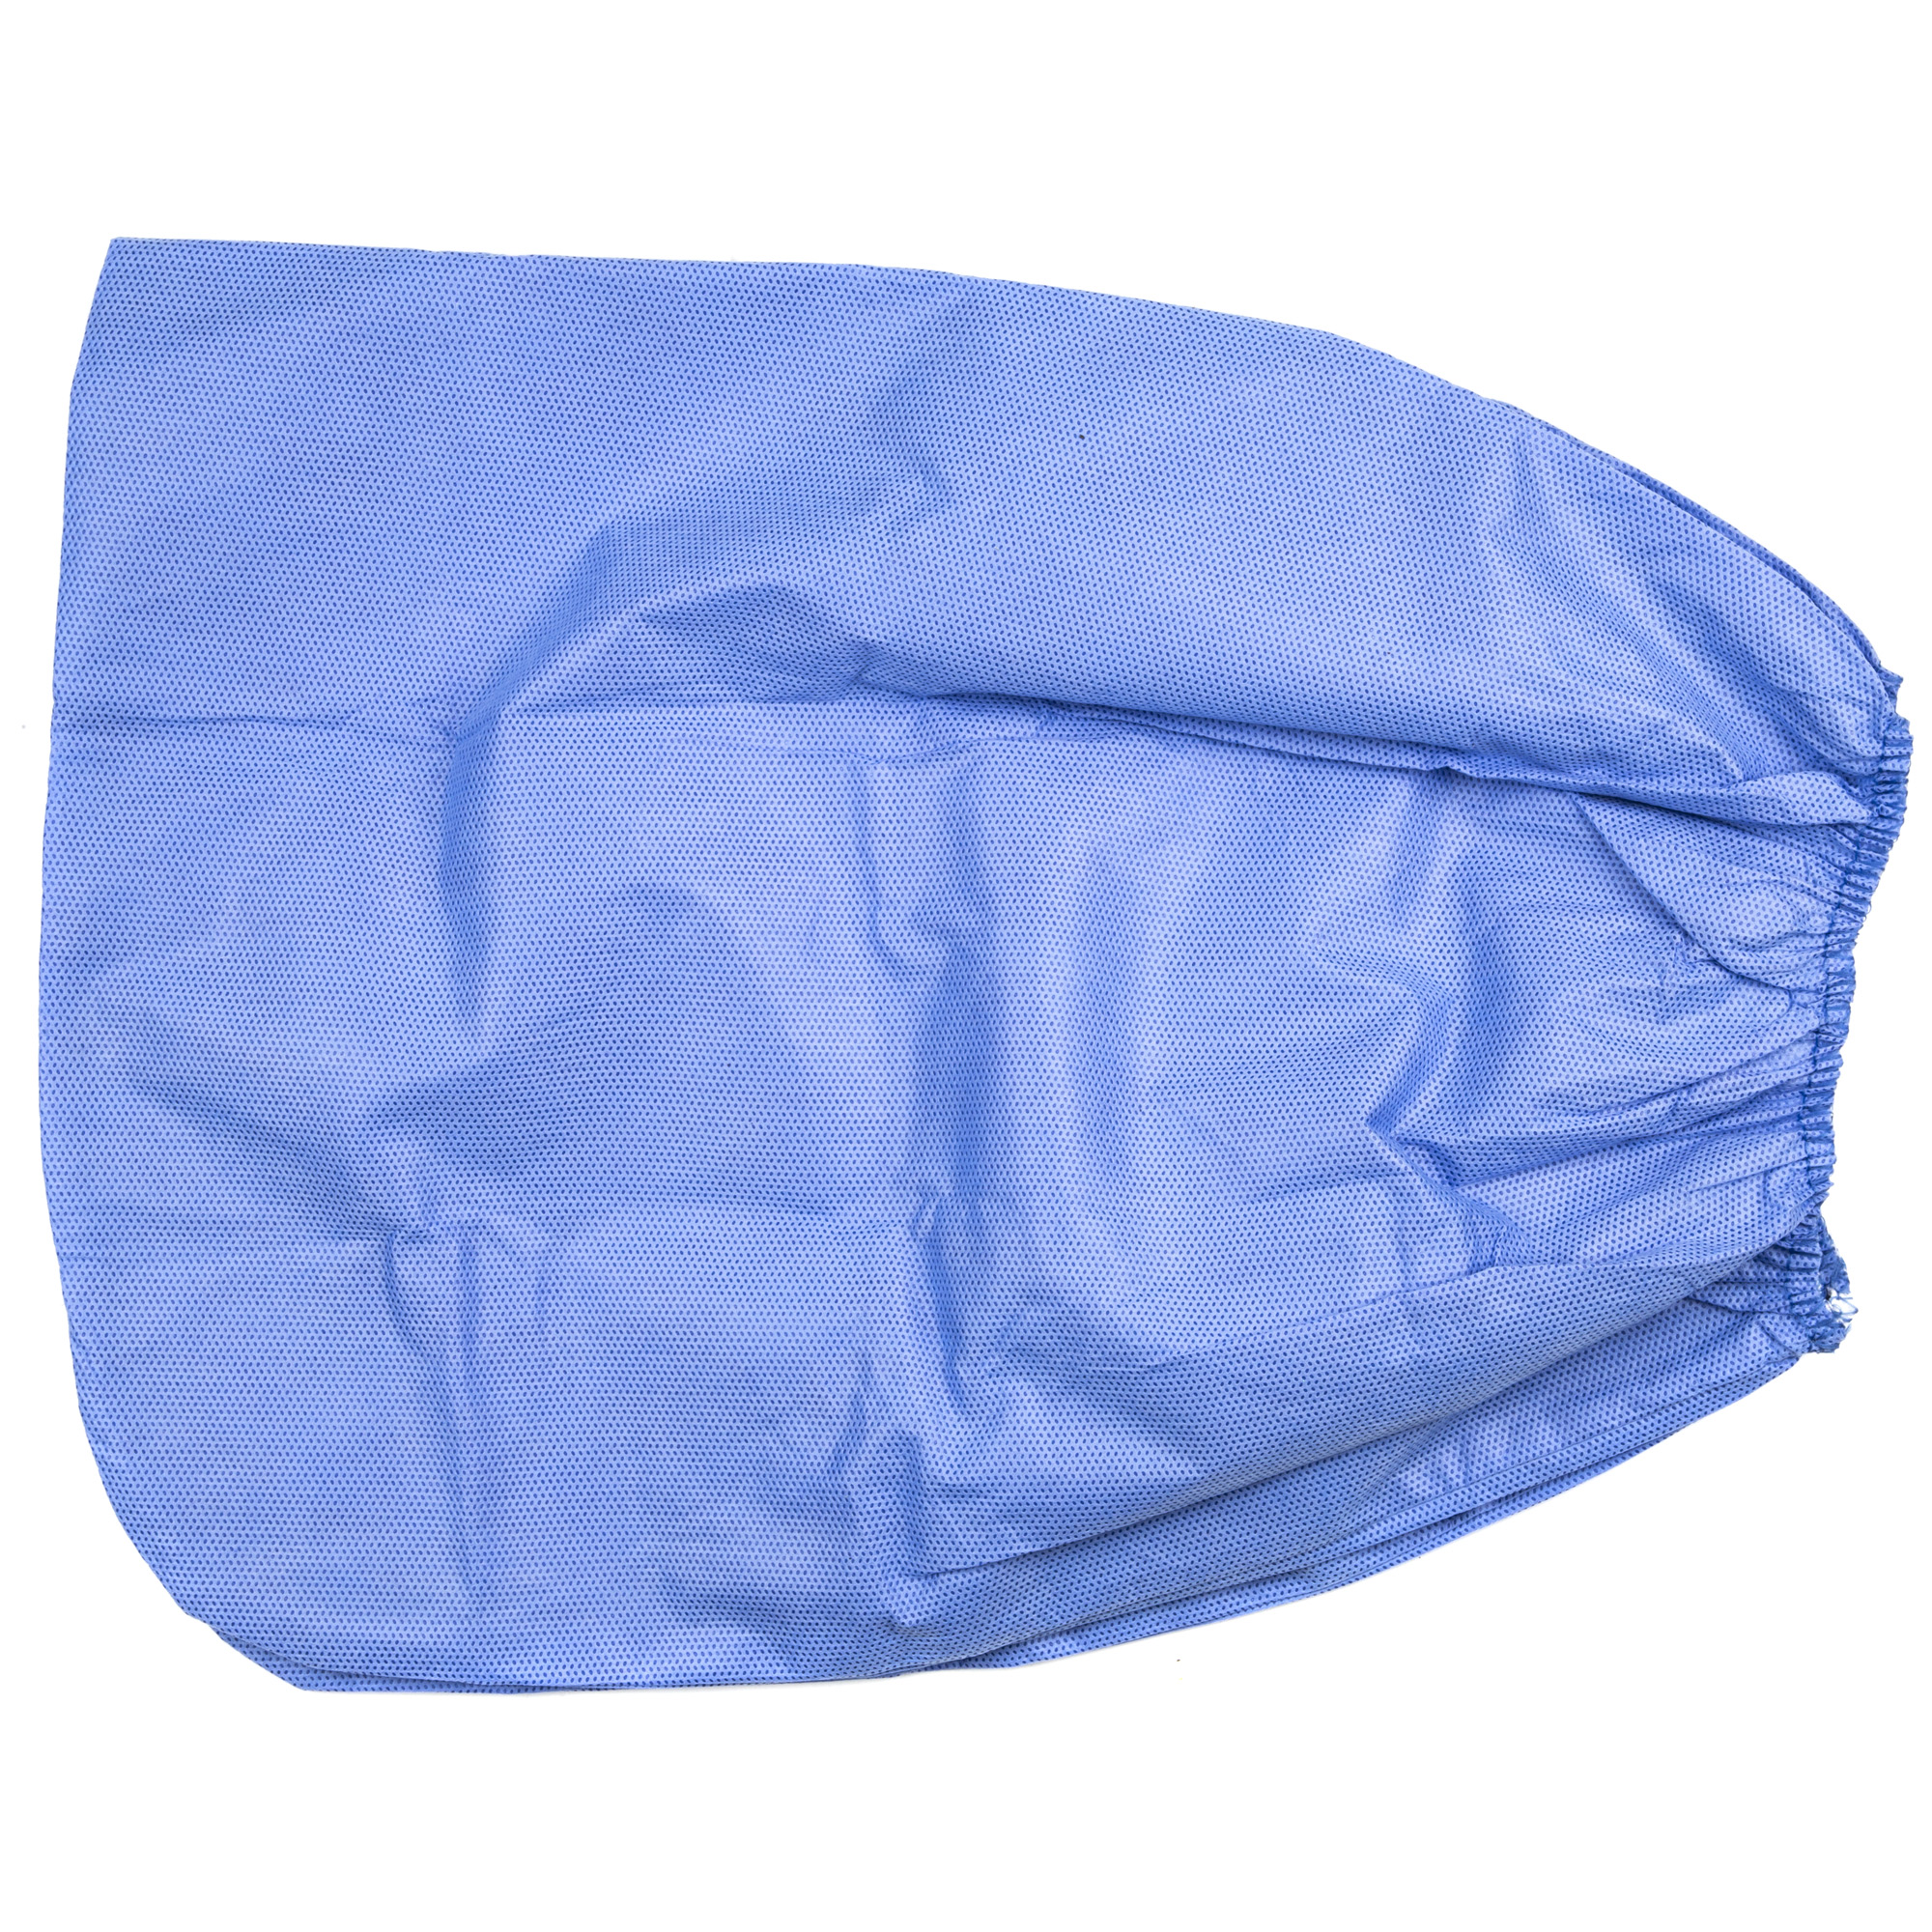 Single-use boot covers feature blue SMS polypropylene construction and elastic tops.